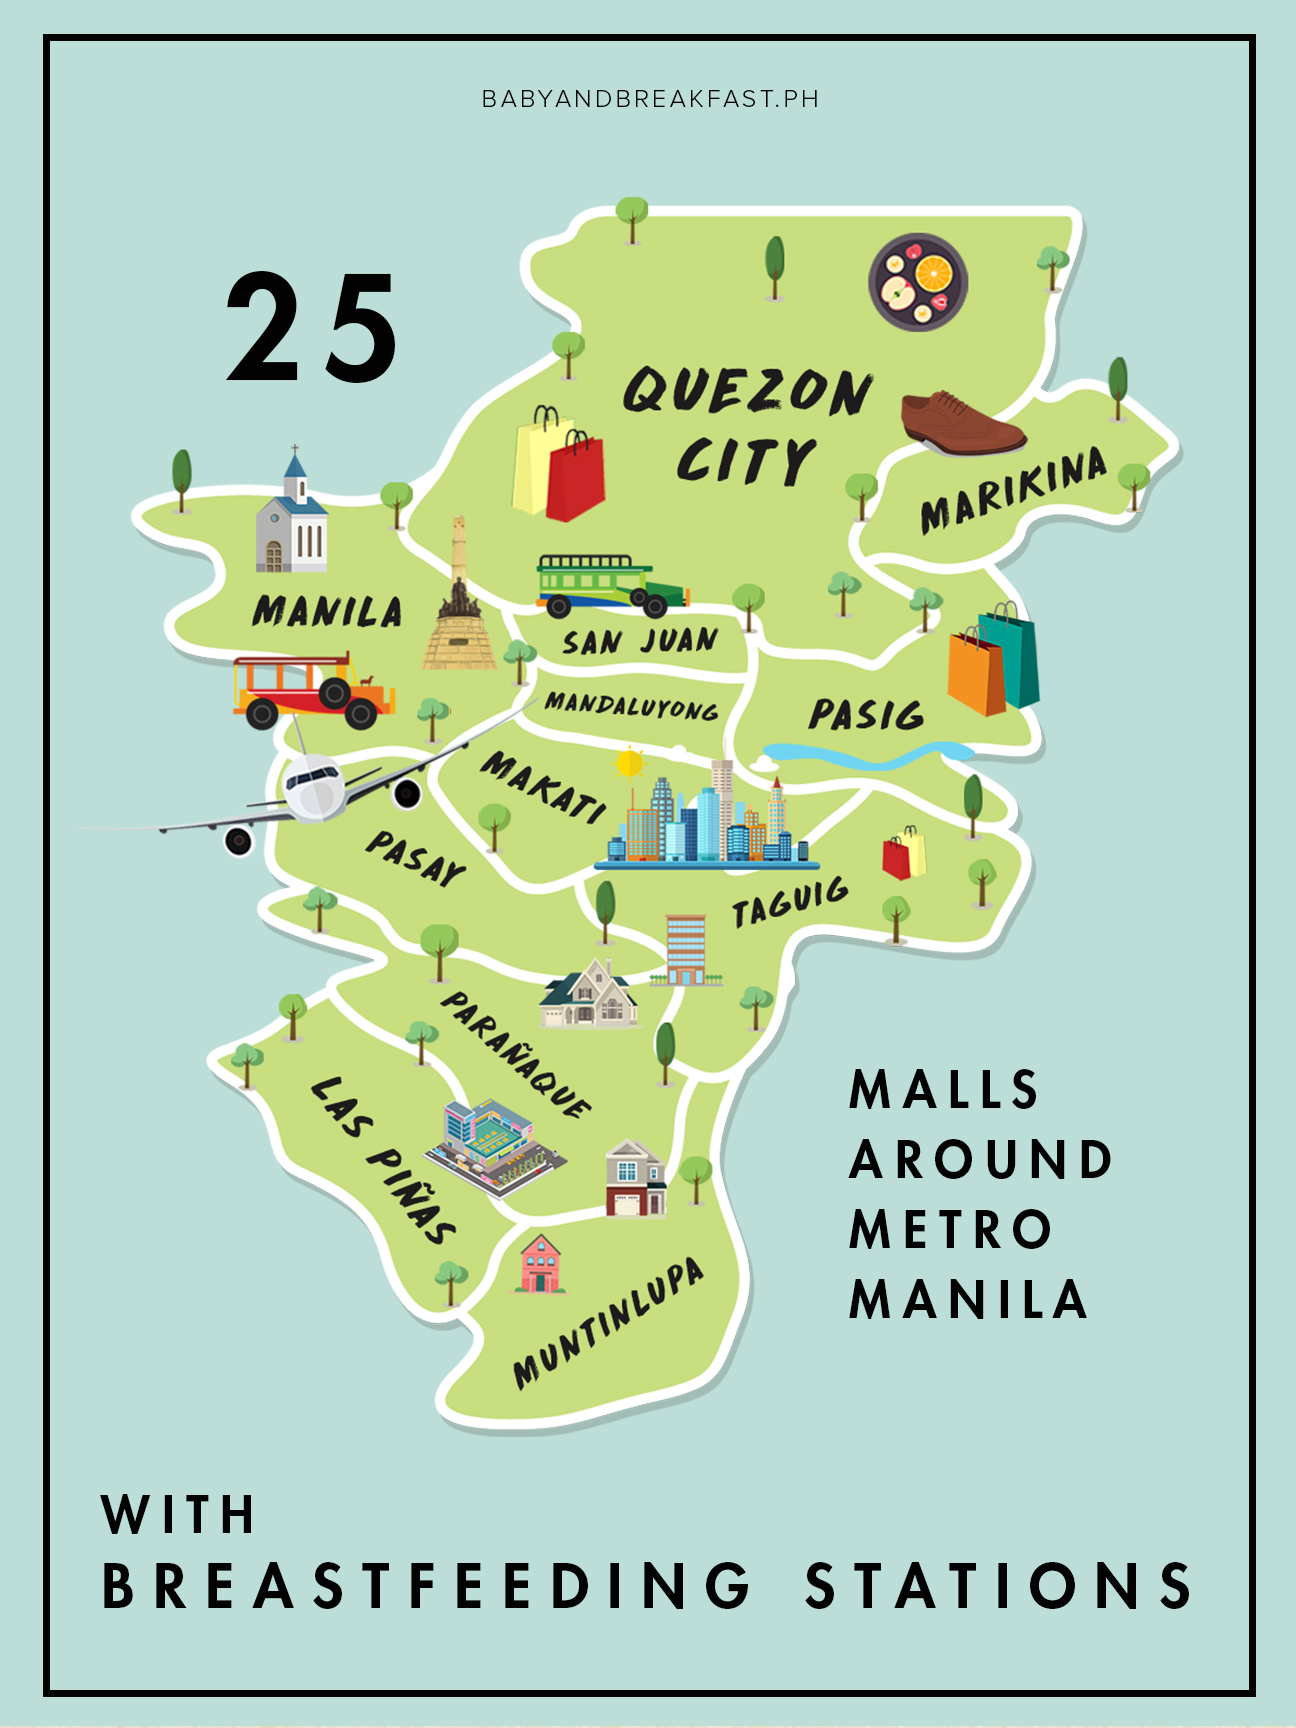 Baby and Breakfast 25 Malls Around Metro Manila with Breastfeeding Stations